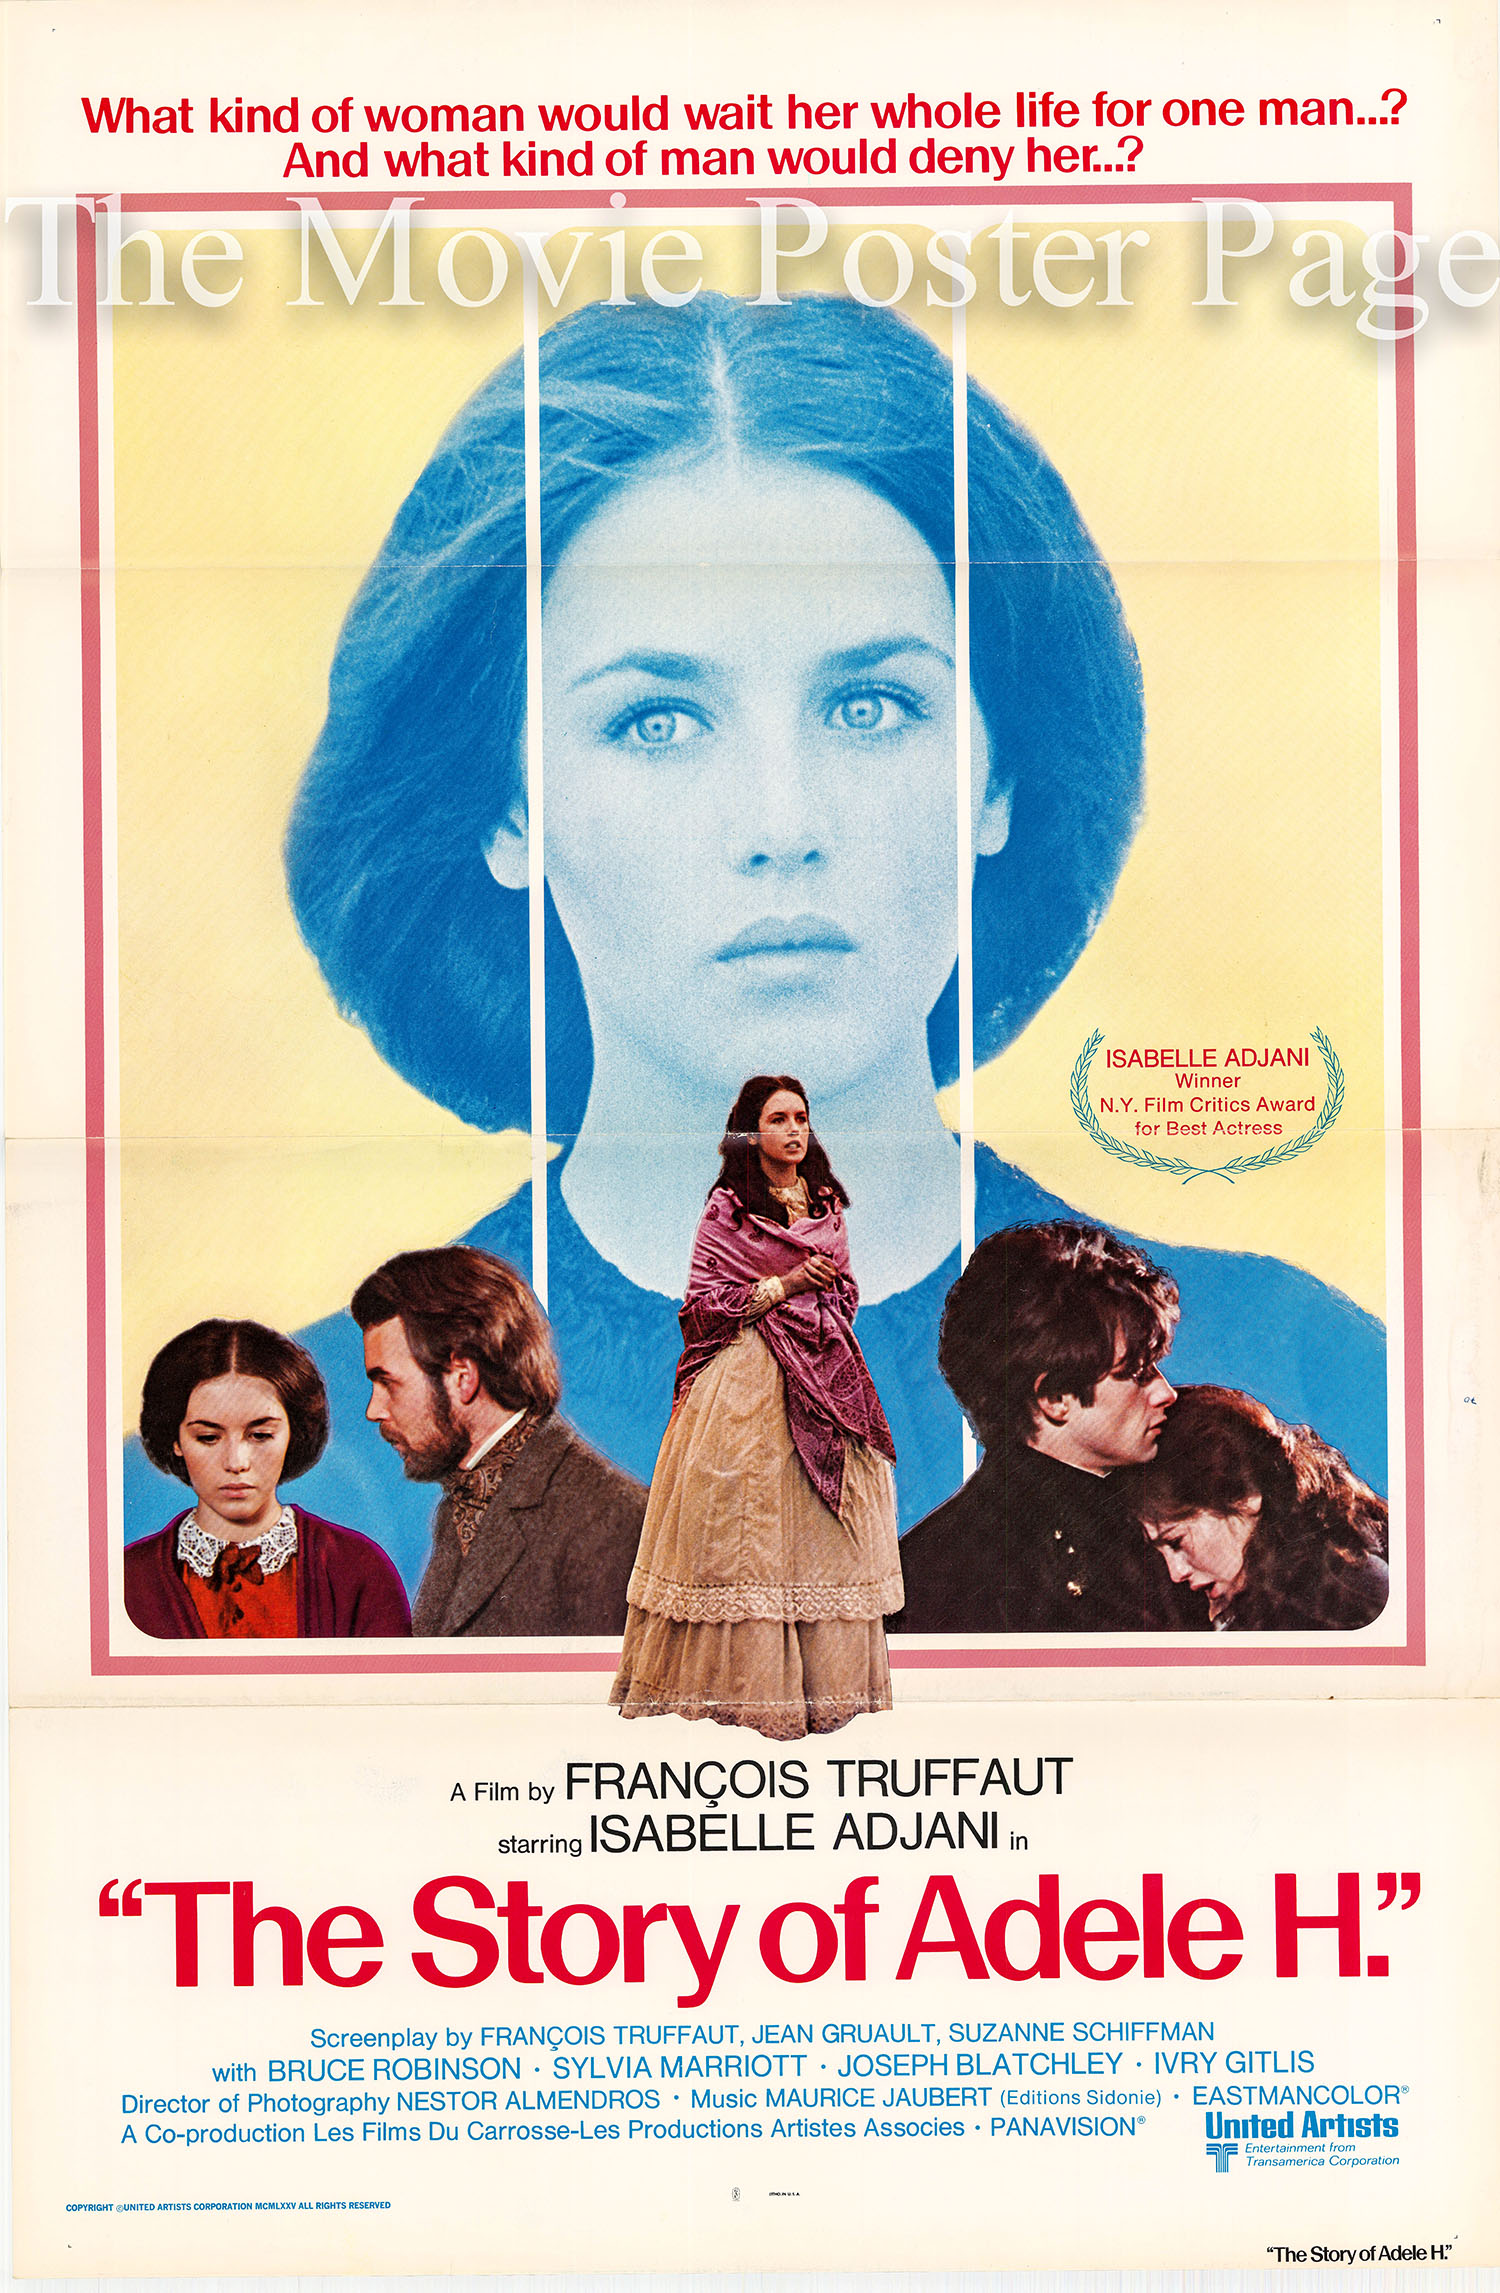 Pictured is a US promotional poster made for the 1975 Francoise Truffaut film The Story of Adele H starring Isabelle adjani as Adele Hugo.